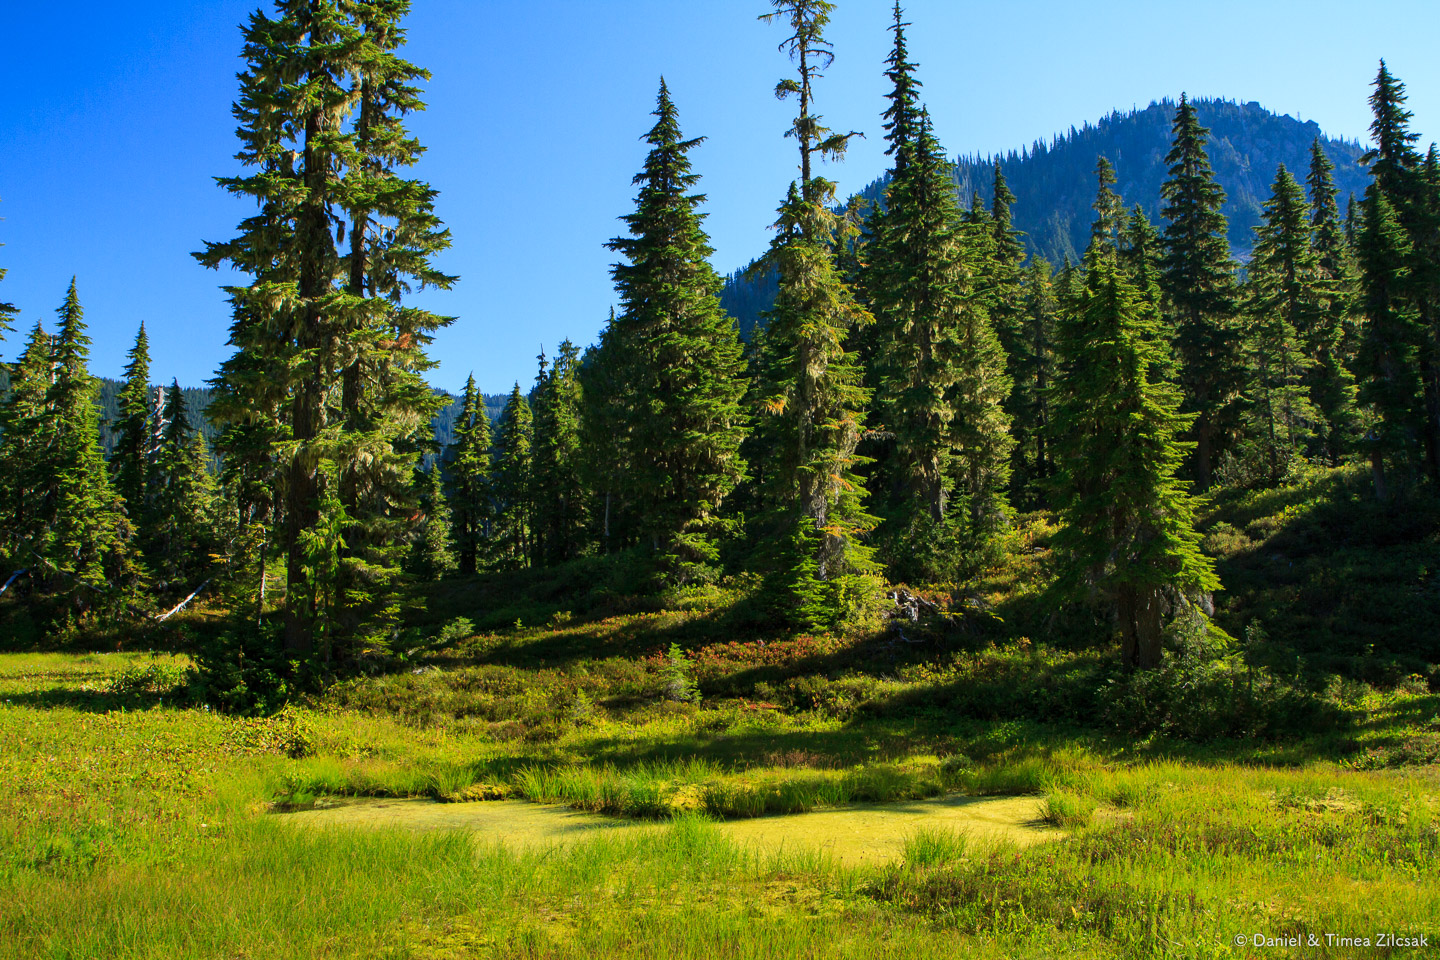 View from our camp at Lower Bridge Creek, Backpacking the High Divide - Seven Lakes Basin Loop, Olympic National Par